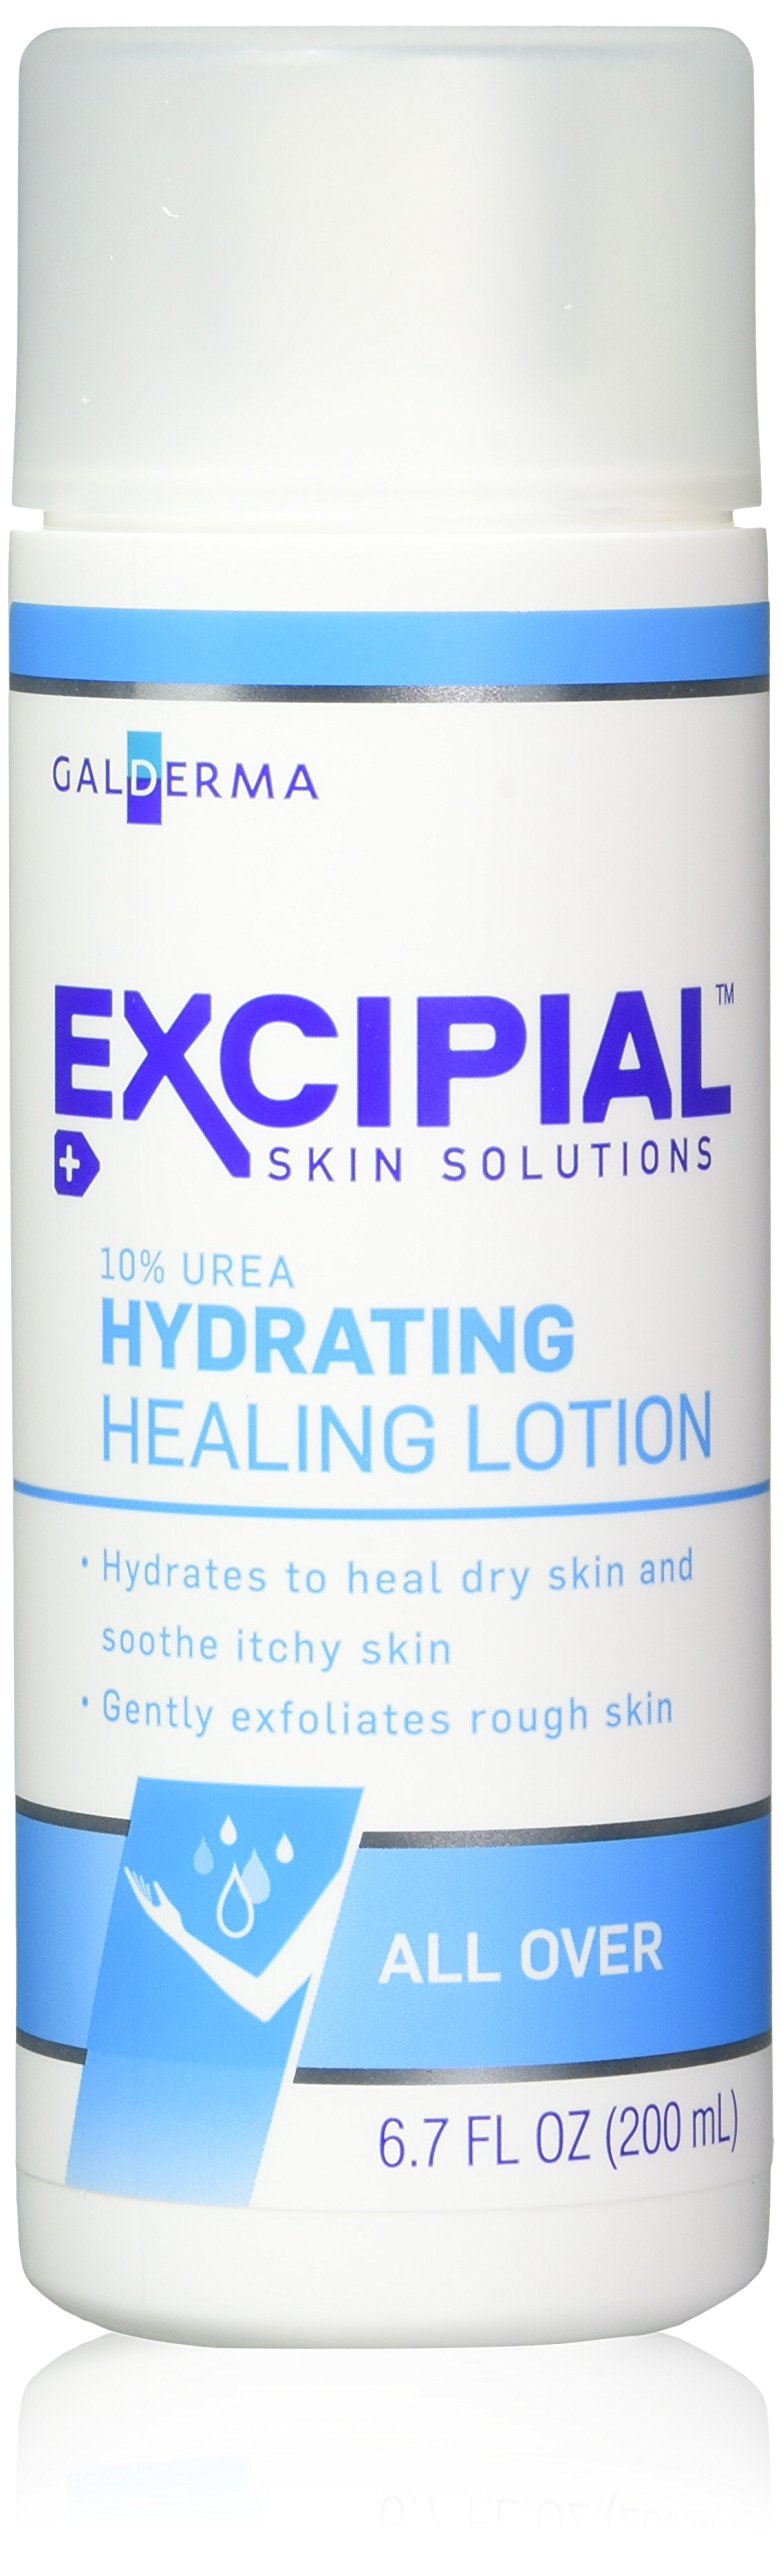 Excipial Urea Hydrating Healing Lotion, 6.7 Ounce, (Pack of 3)